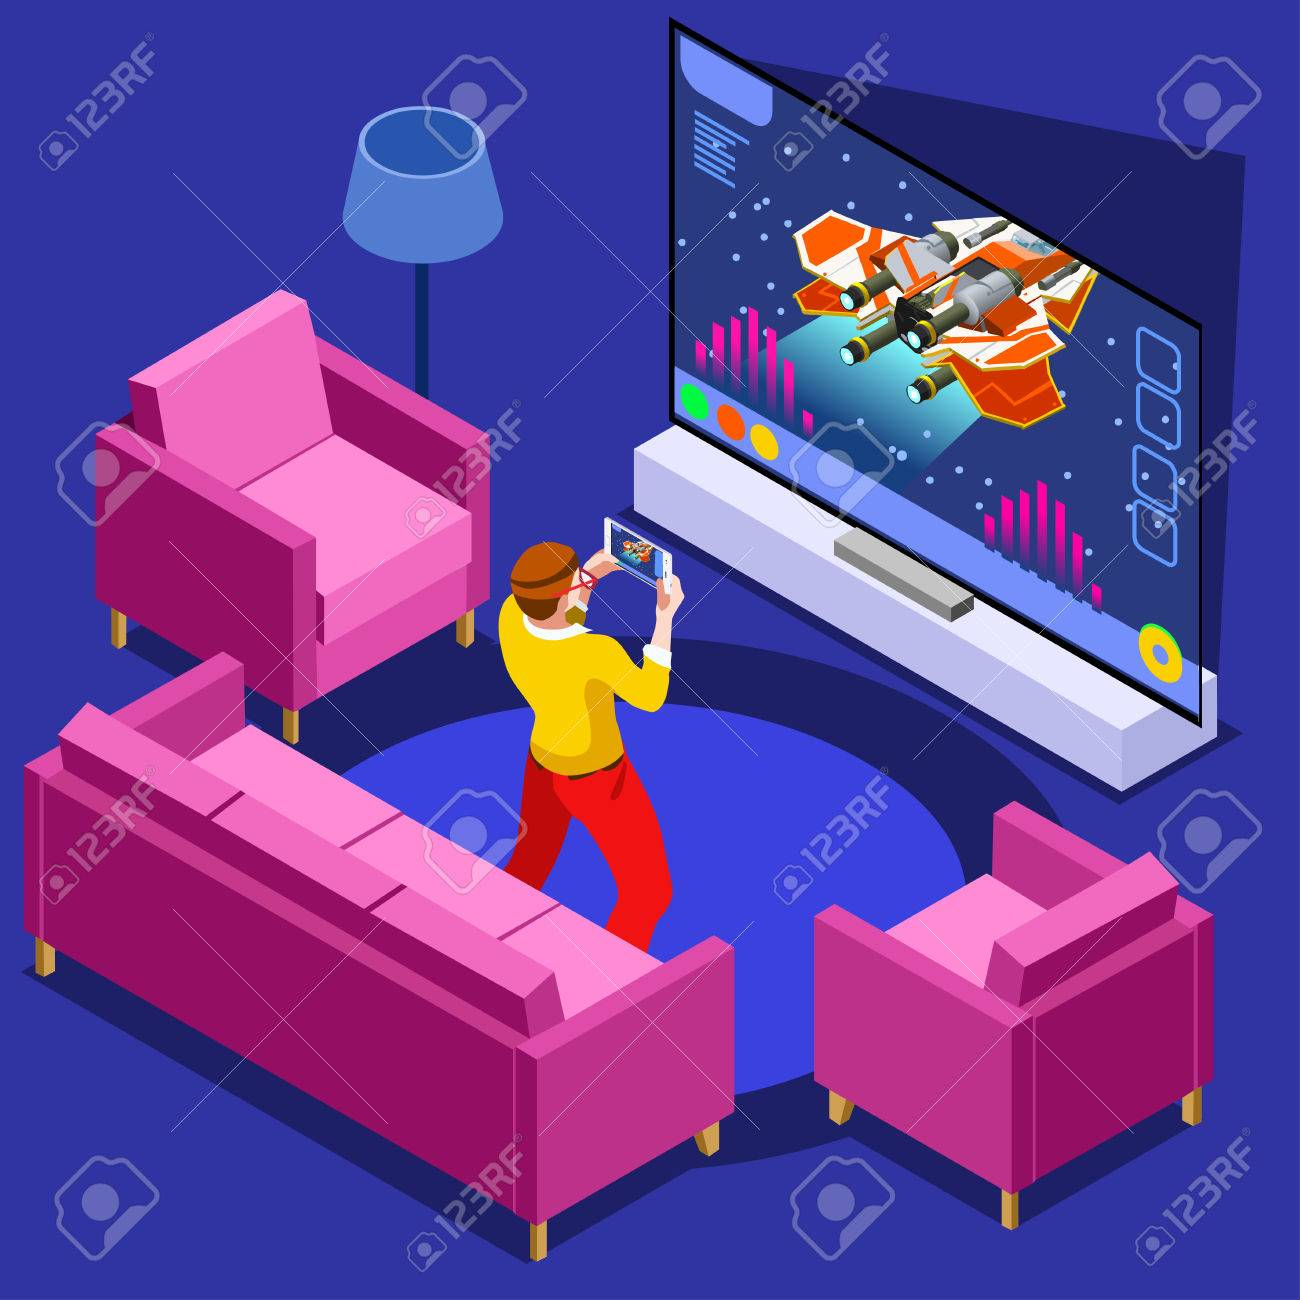 Video game screen and gamer person gaming online with console